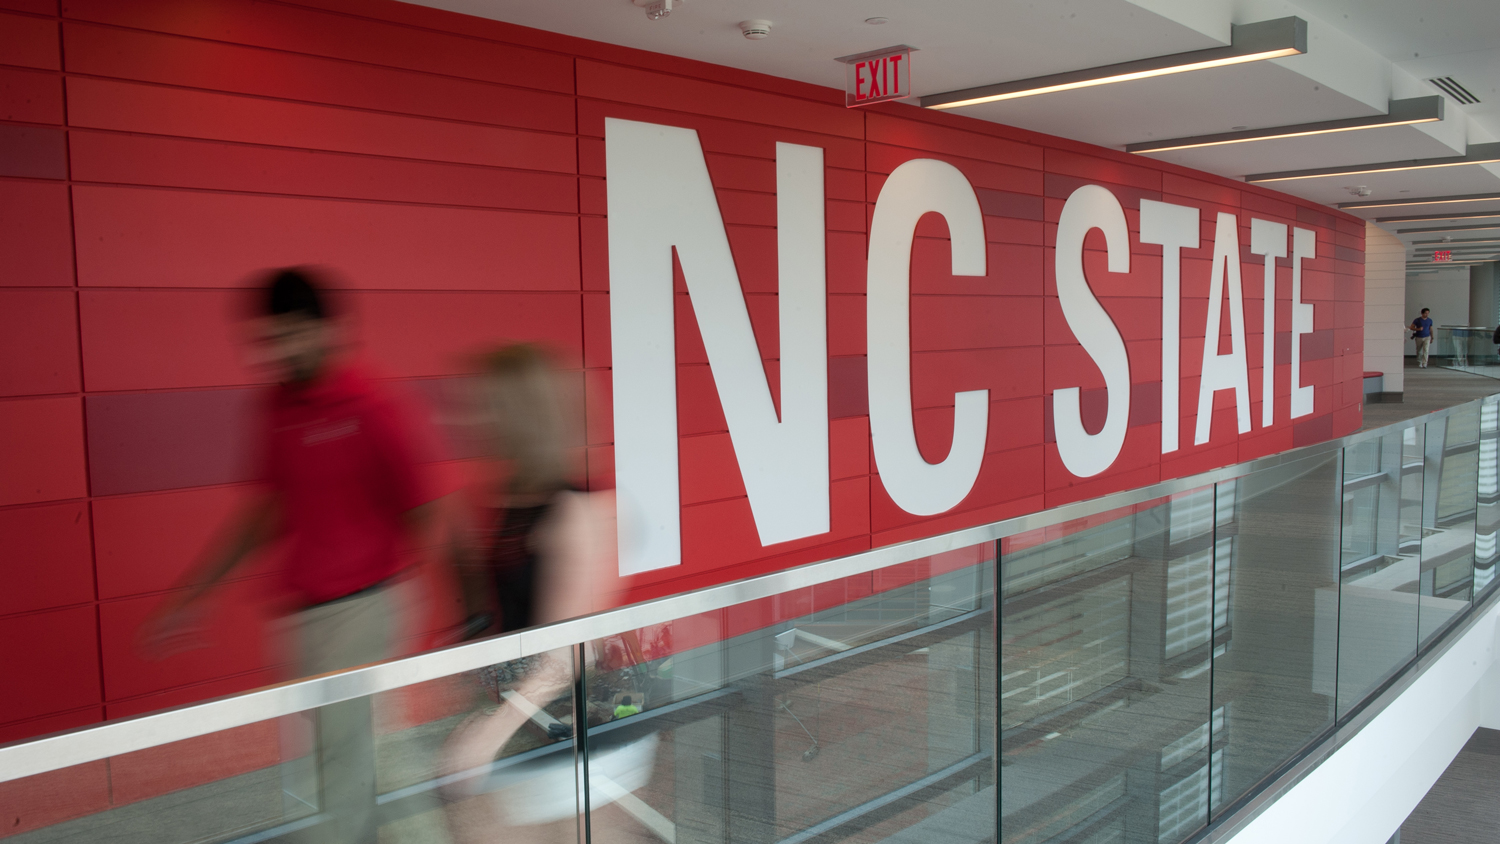 Tally union hallway - Academics - College of Natural Resources at NCState University